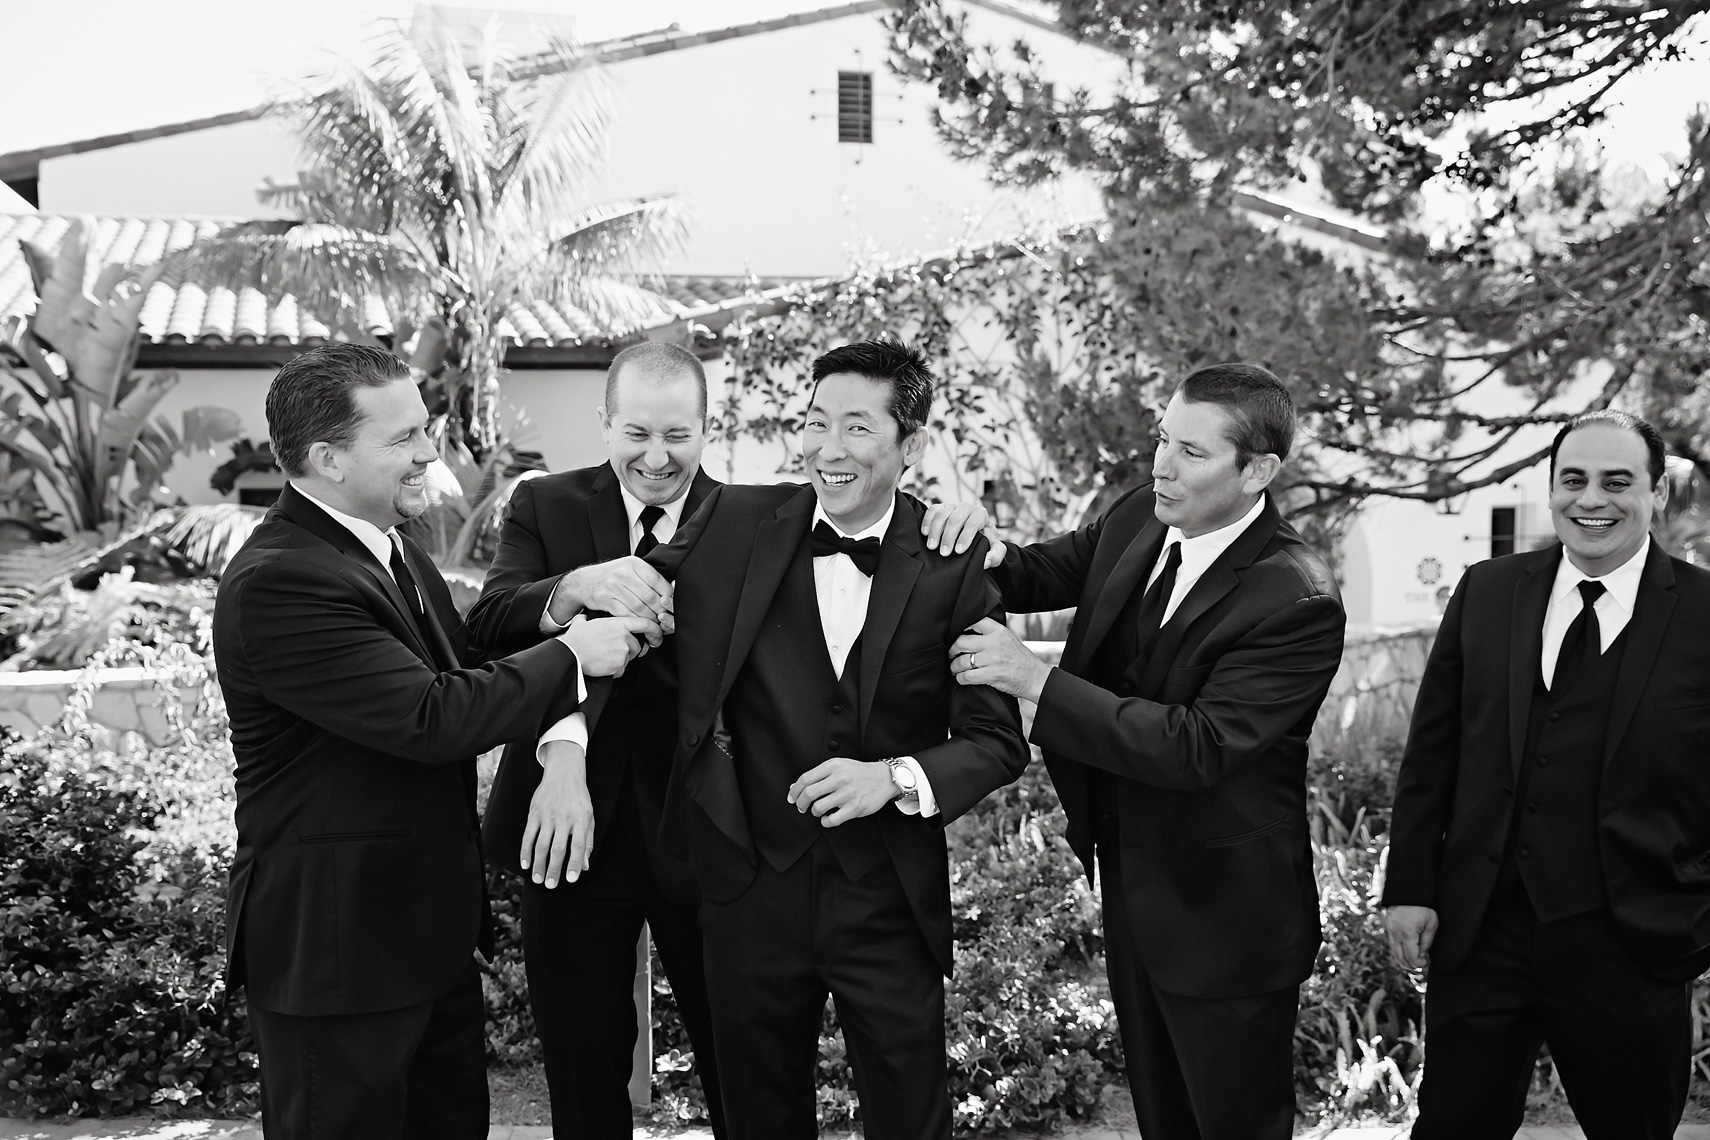 Groom and groomsmen have fun prior to wedding ceremony at Terranea Resort in Rancho Palos Verdes